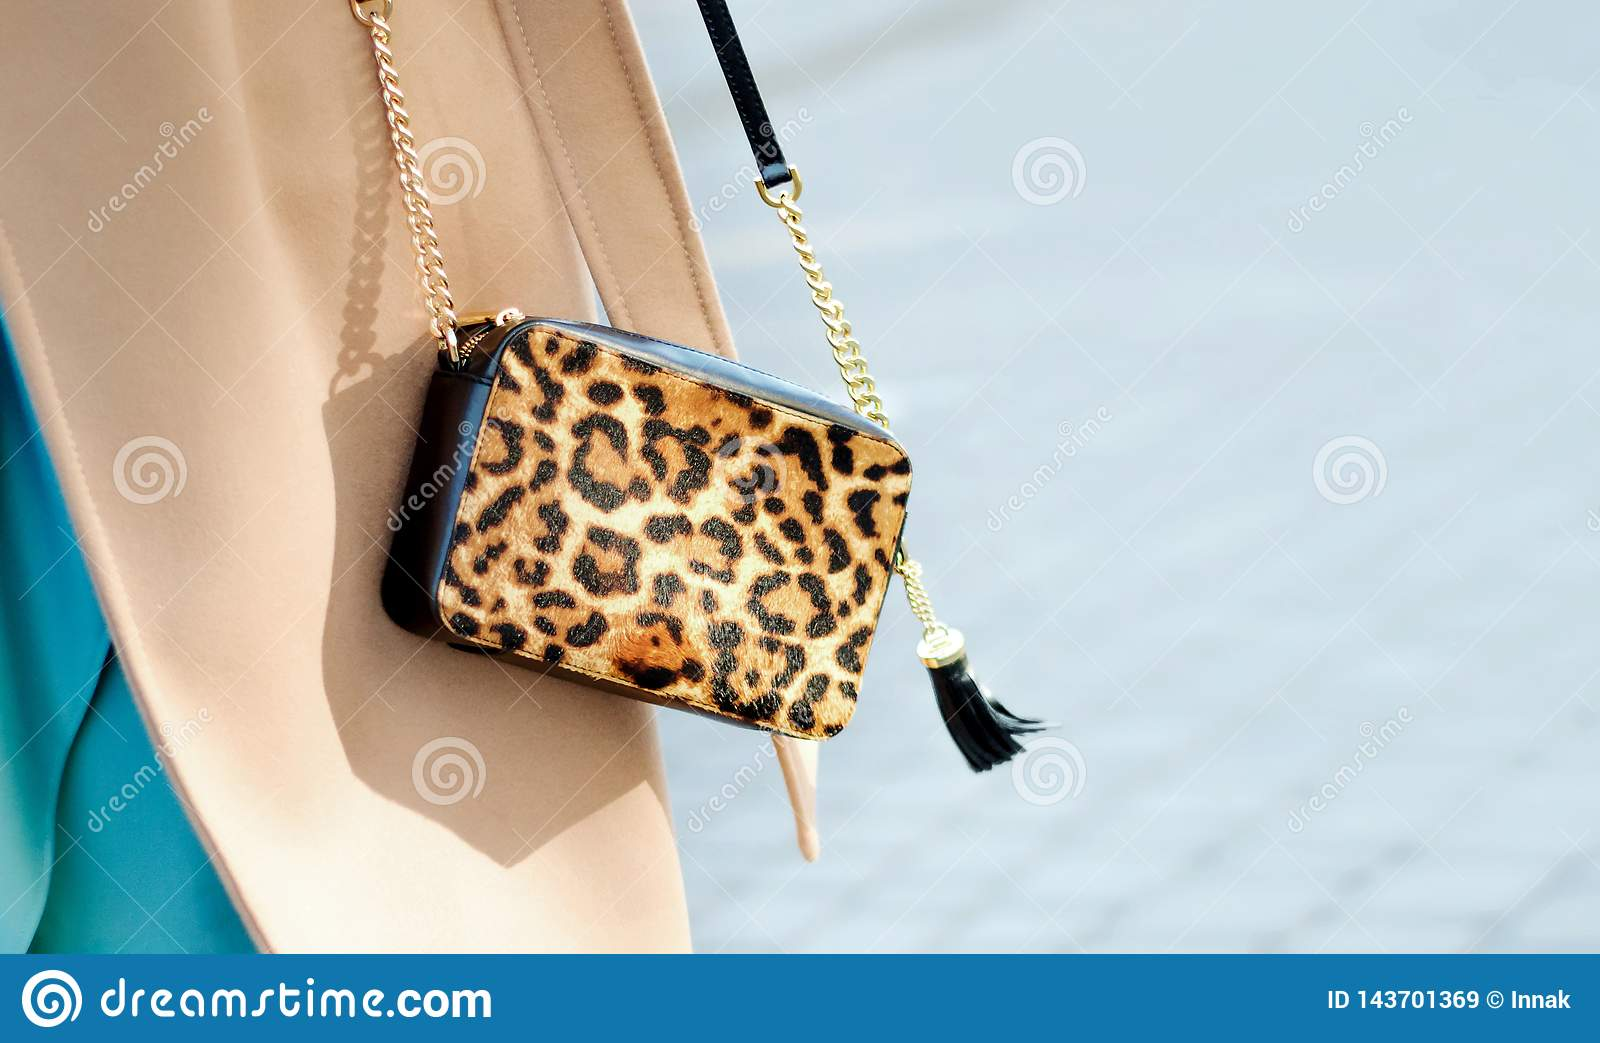 Bag in leopard print close-up. Small leather handbag in female hands. Woman walking in the city.